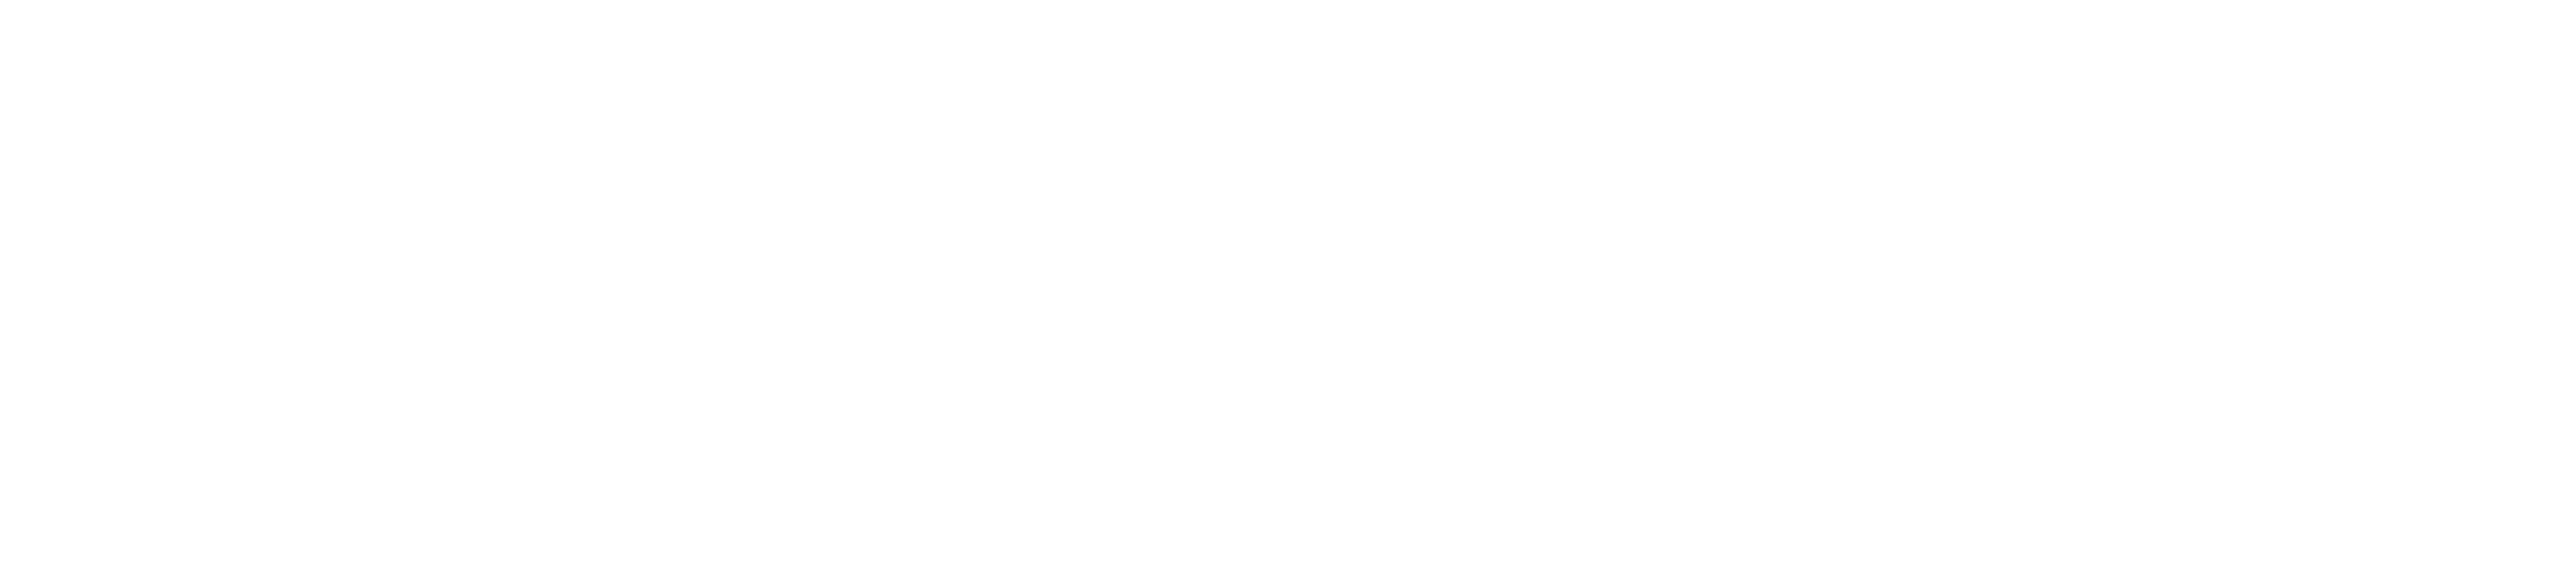 Concordian International School Bangkok, Thailand logo